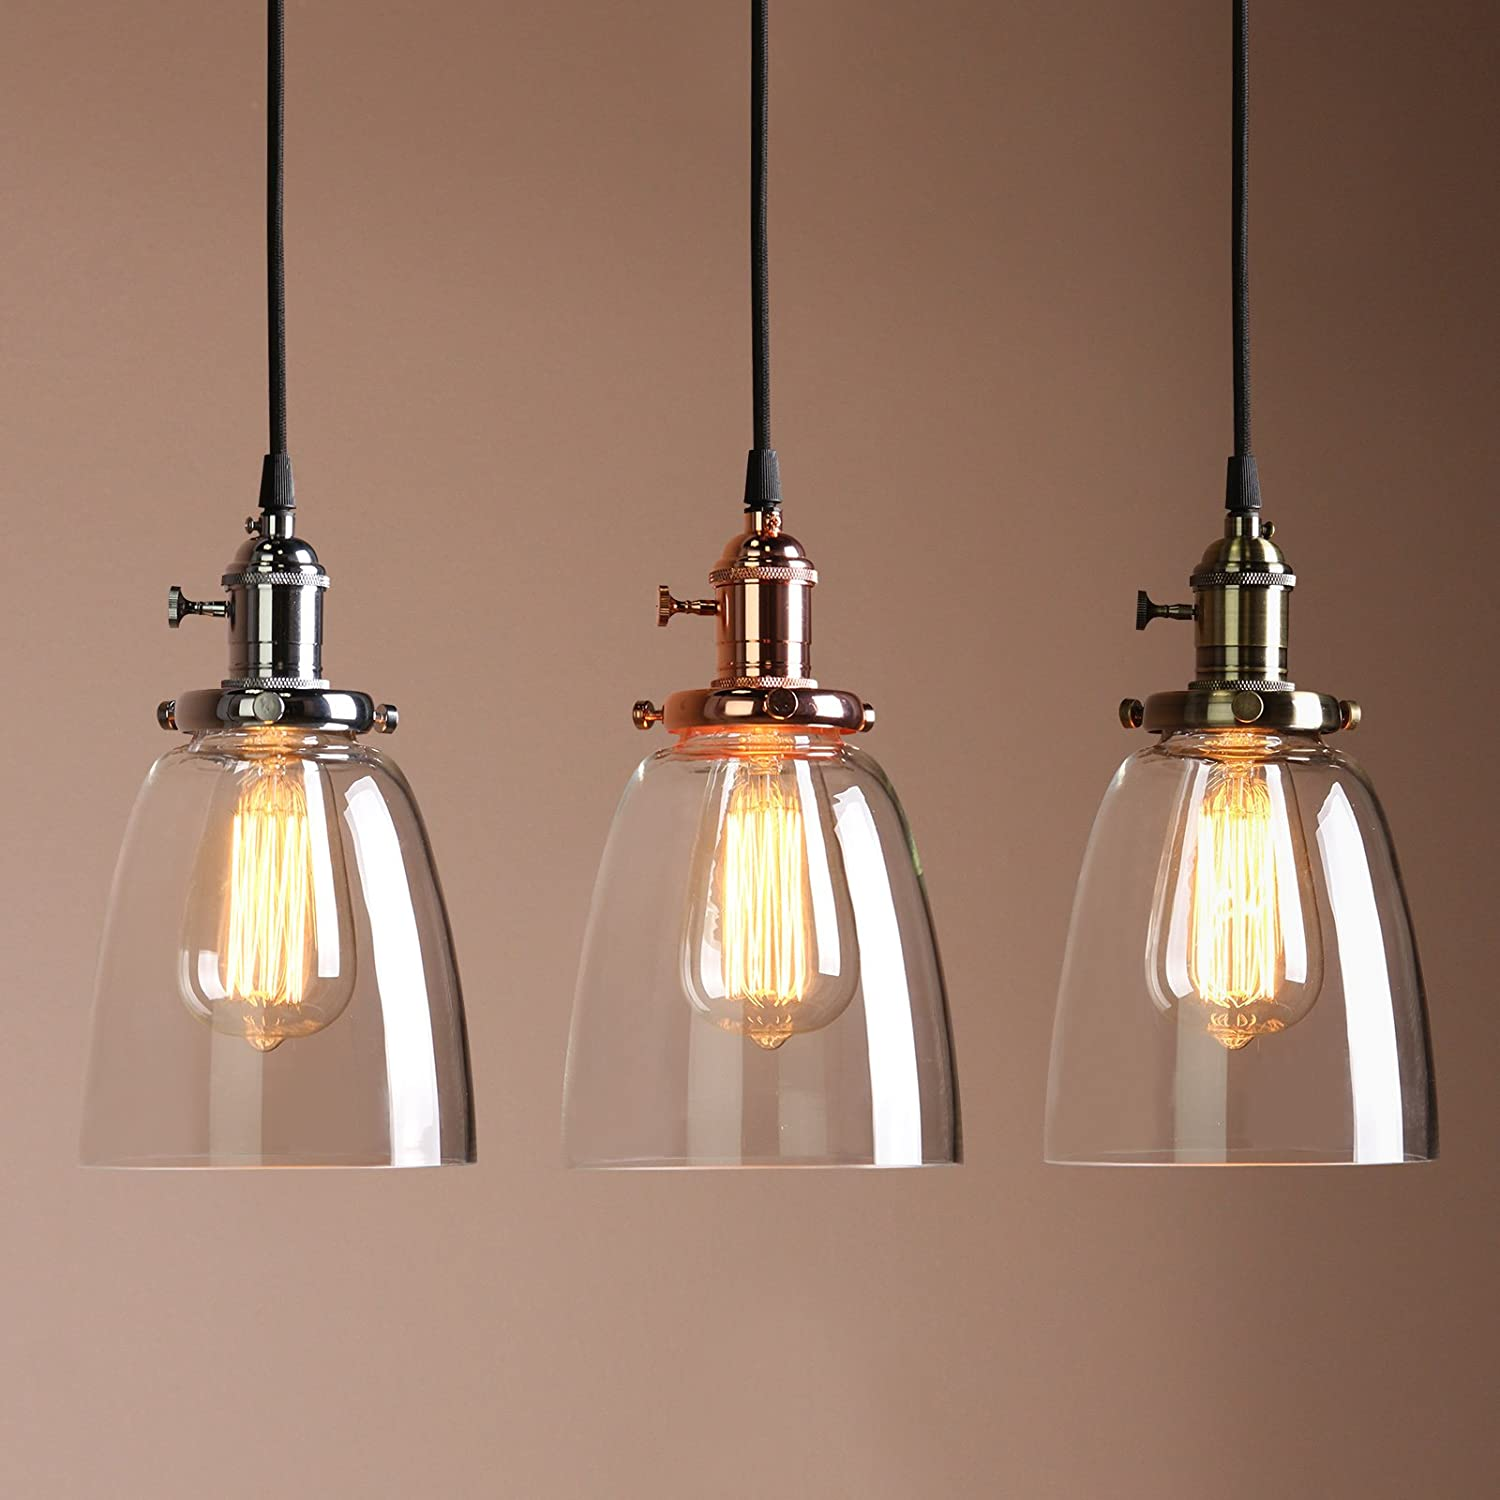 green lights pendant retro dp co amazon home industrial buyee shade kitchen metal edison uk dome fixture vintage lamp cafe ceiling